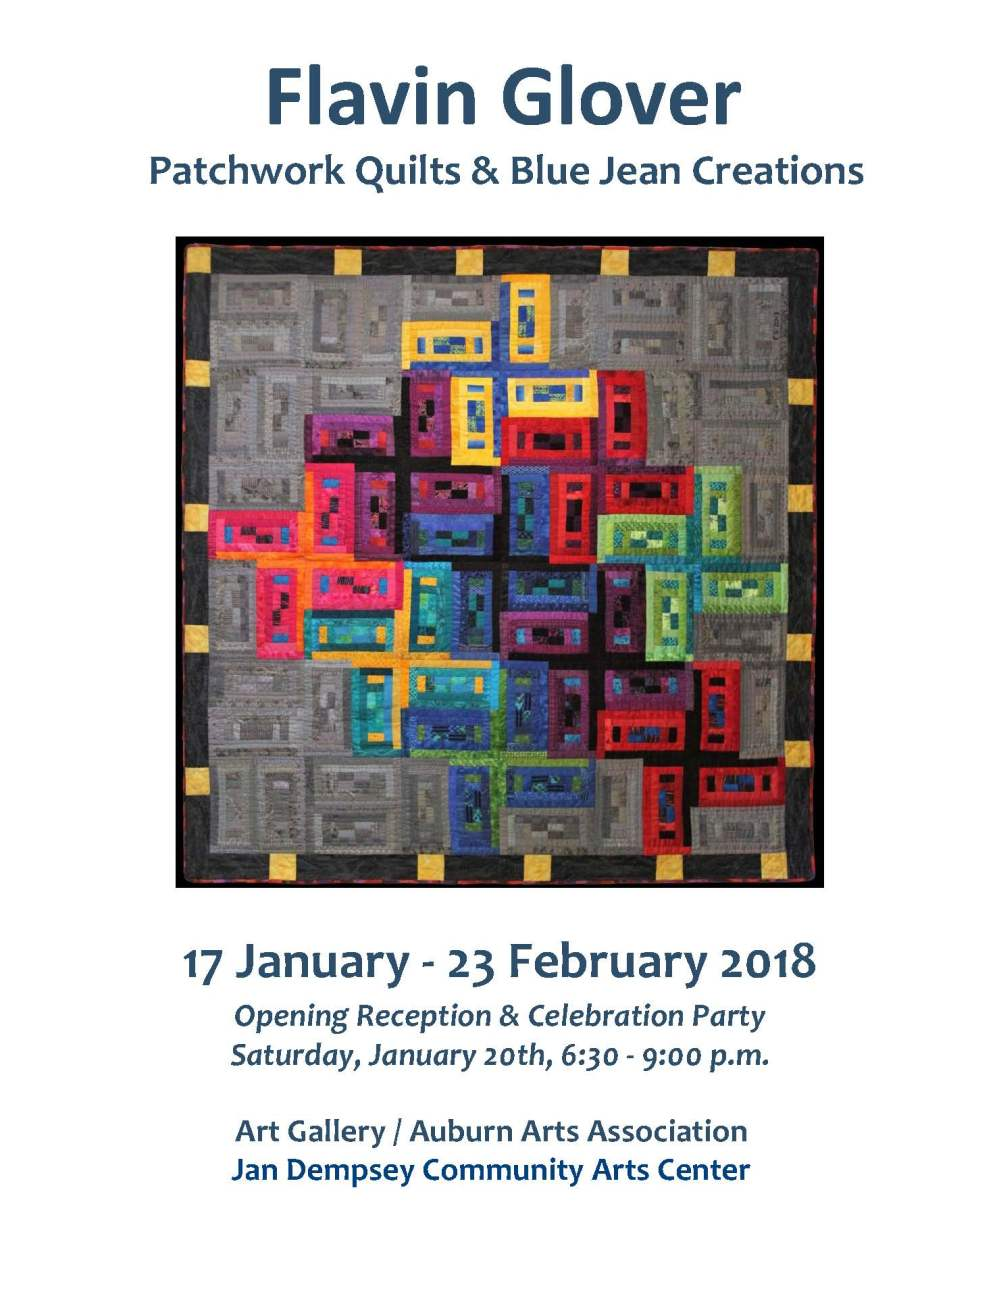 medium resolution of at the beginning of 2018 the auburn arts association presented an exhibition of patchwork quilts and blue jean creations by auburn resident flavin glover